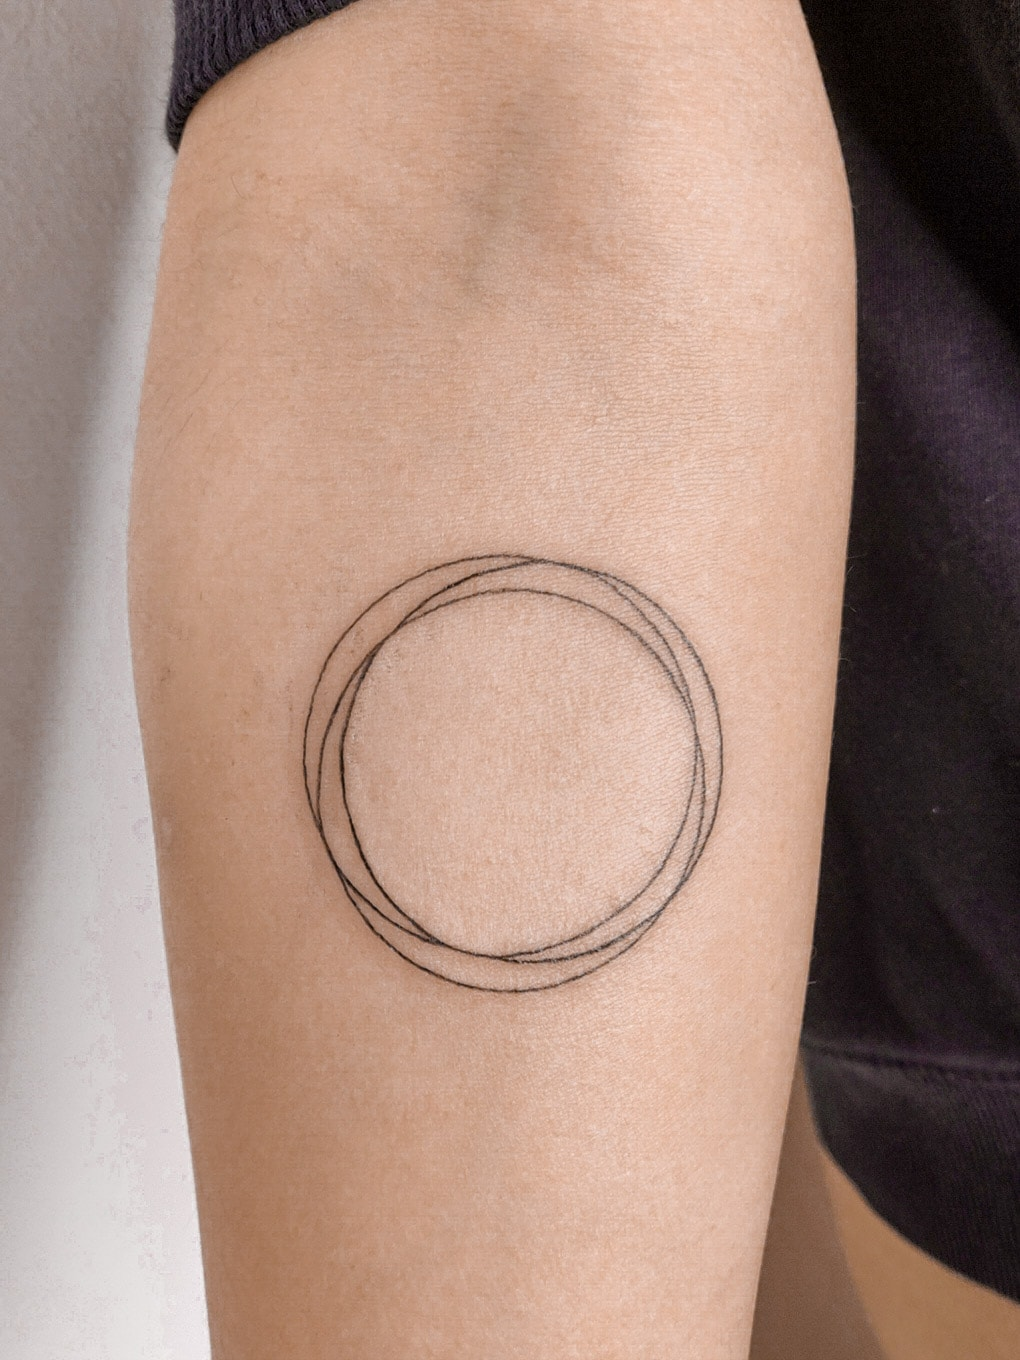 agus-coll-tattoo-artist-circle-arm